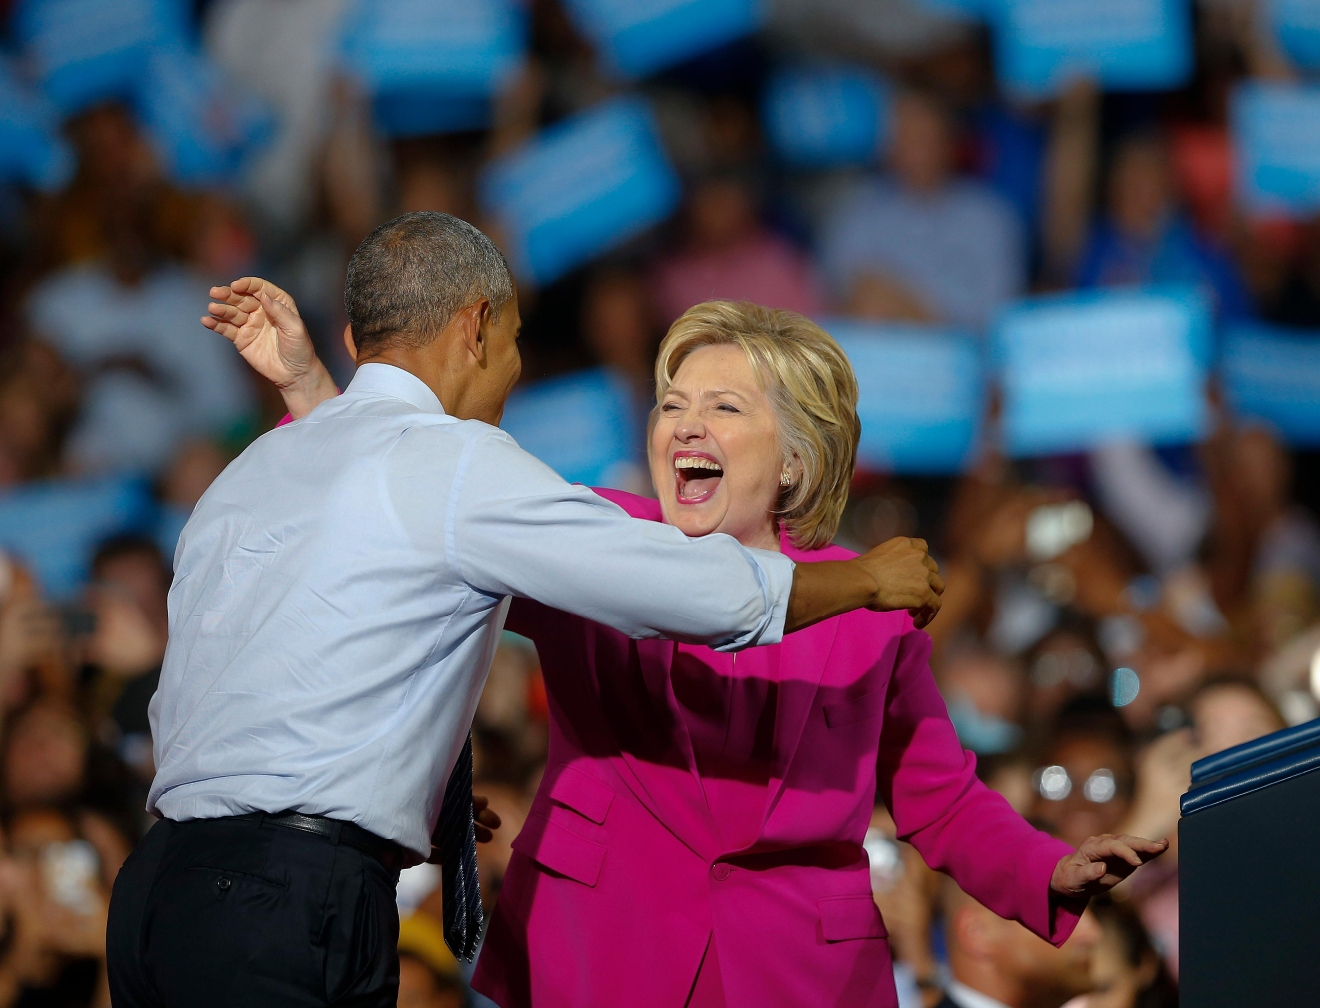 President Barack Obama and Democratic presidential candidate Hillary Clinton embrace during a campaign rally, Tuesday, July 5, 2016, in Charlotte, N.C.. (AP Photo/John Bazemore)